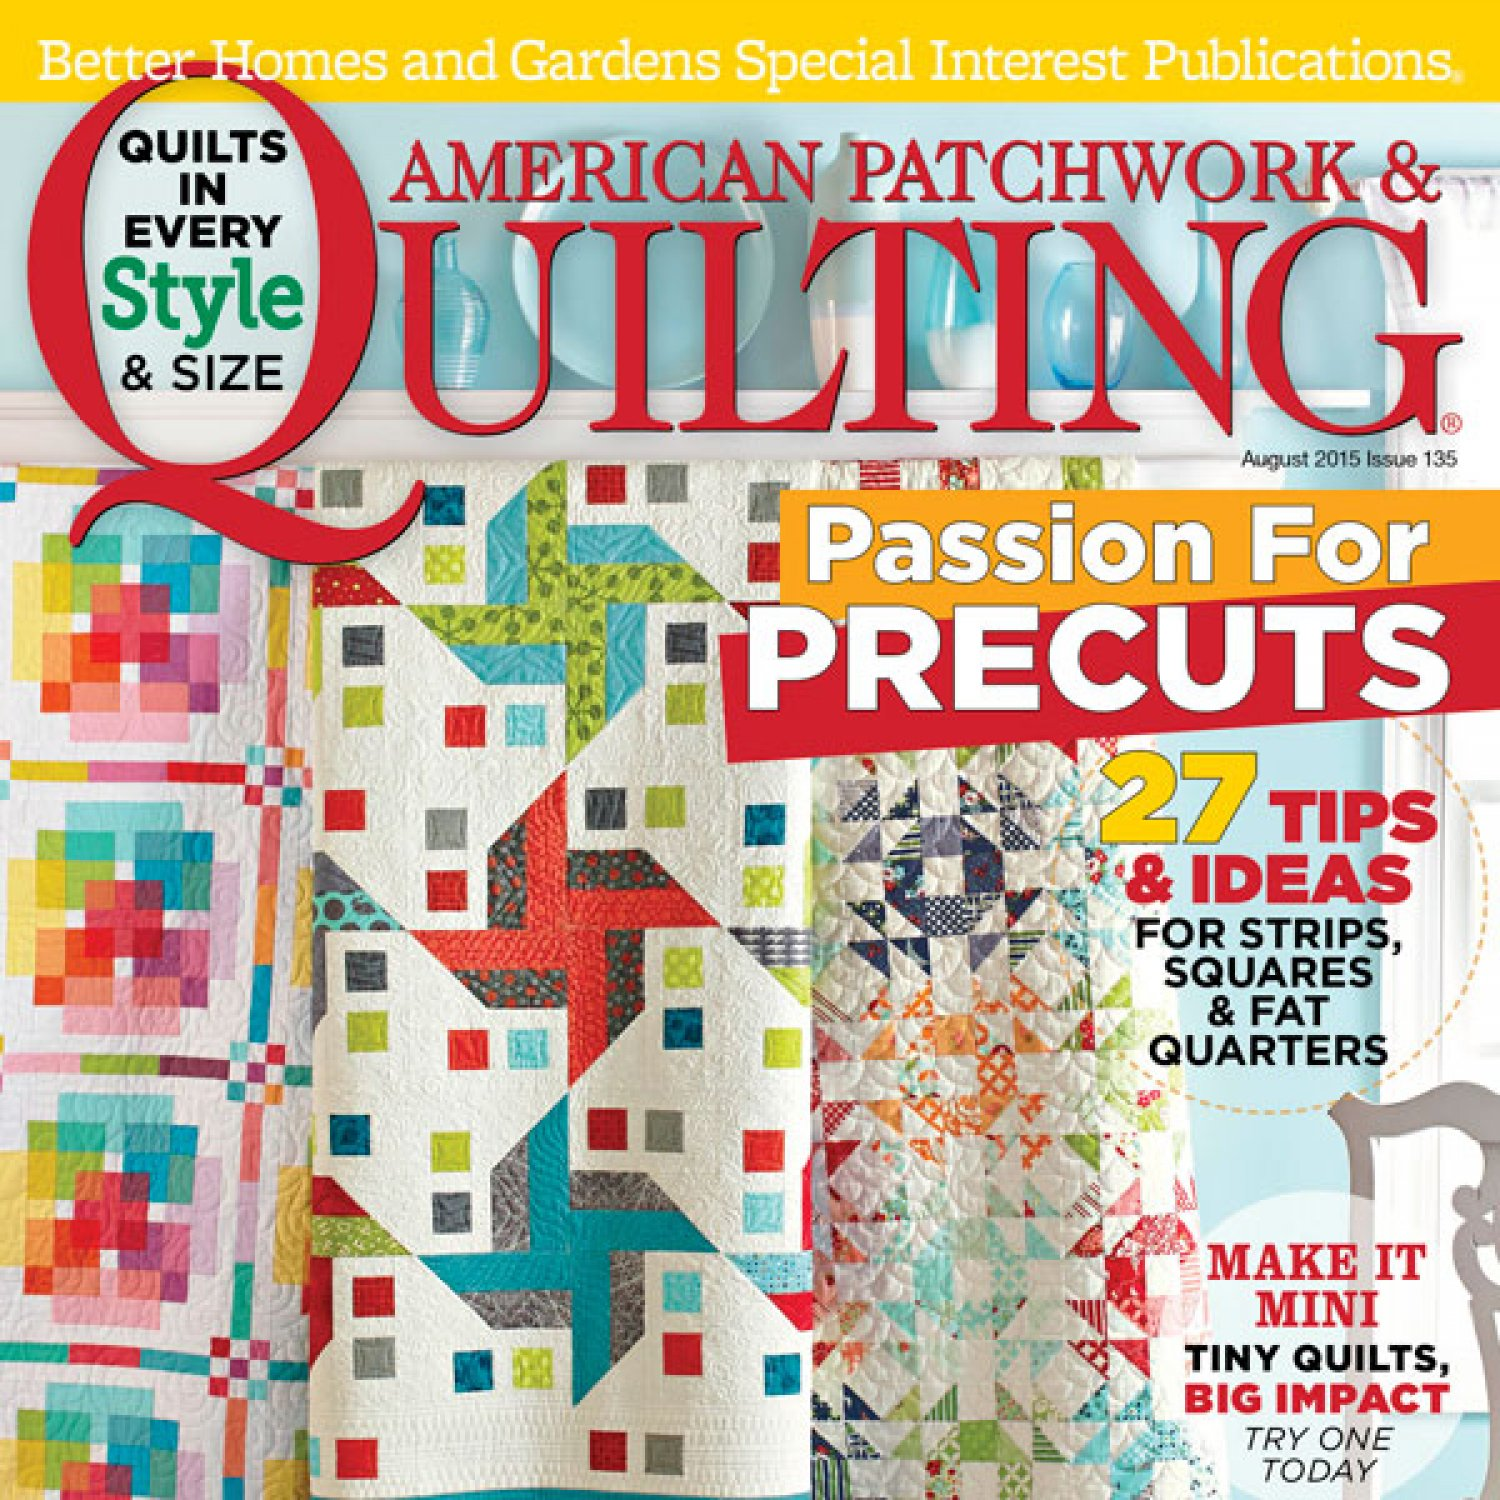 American Patchwork & Quilting August 2015 AllPeopleQuilt.com